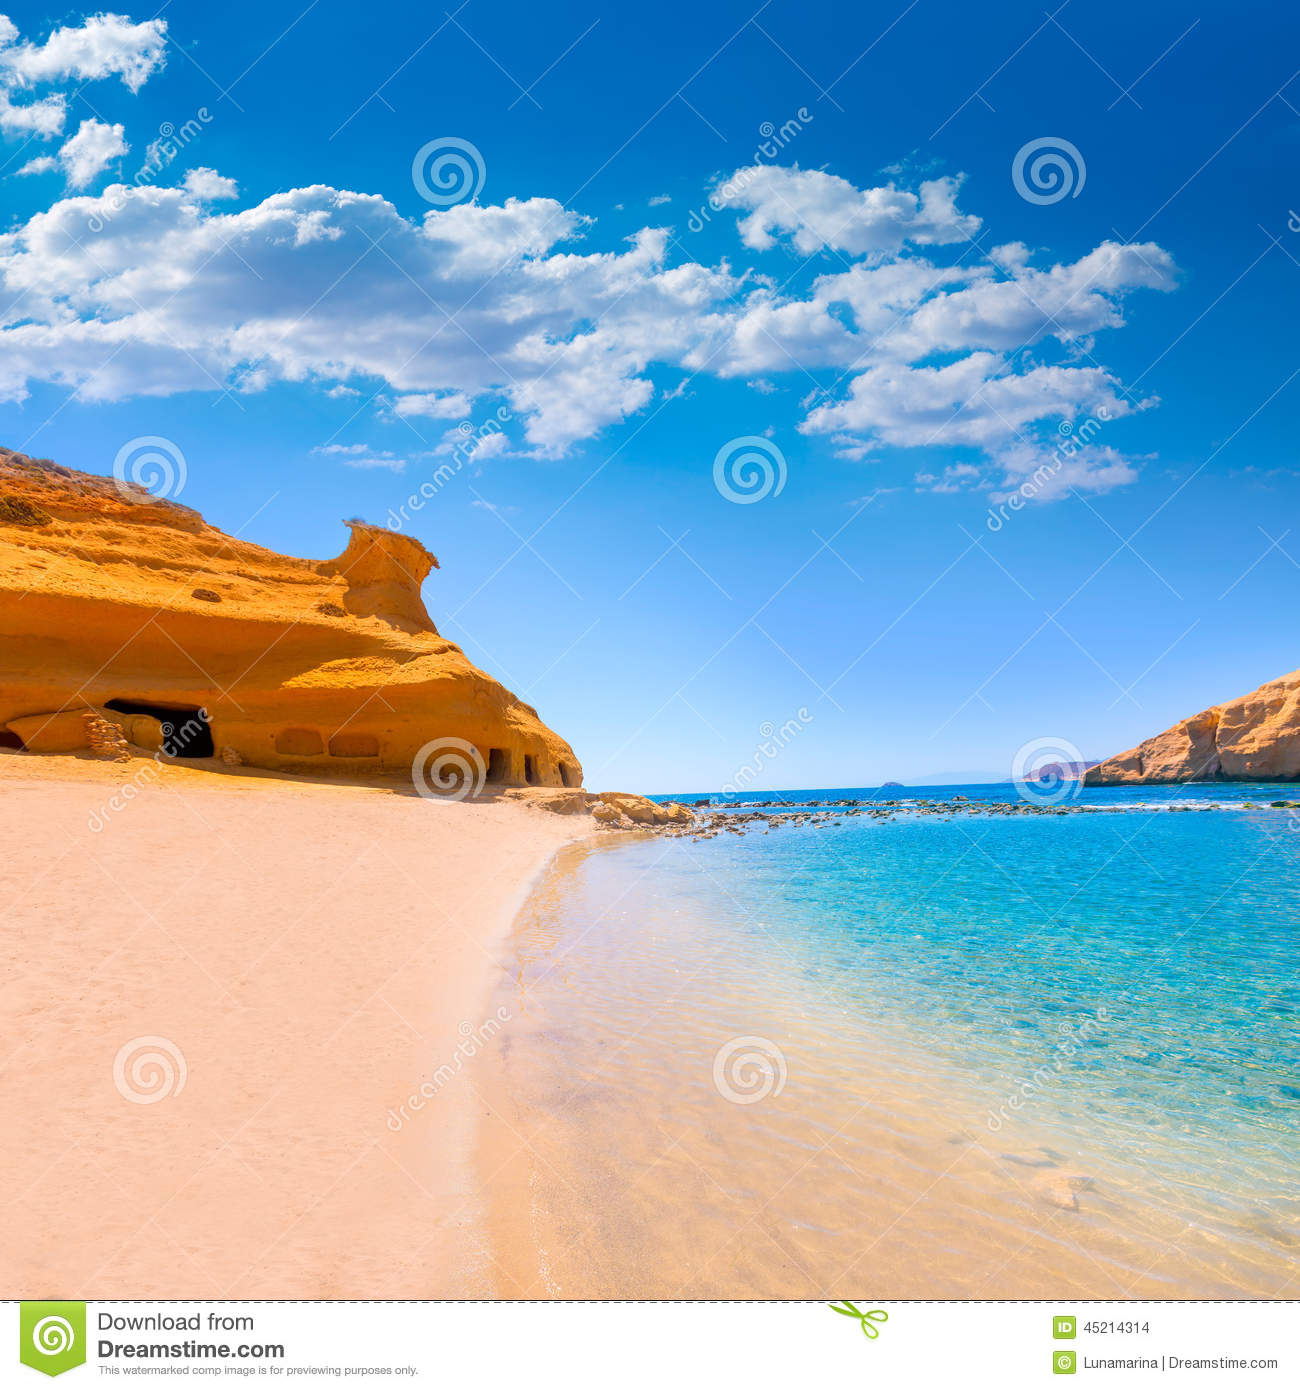 Long Stay Vacations In Spain: Cocedores Beach In Murcia Near Aguilas Spain Stock Photo